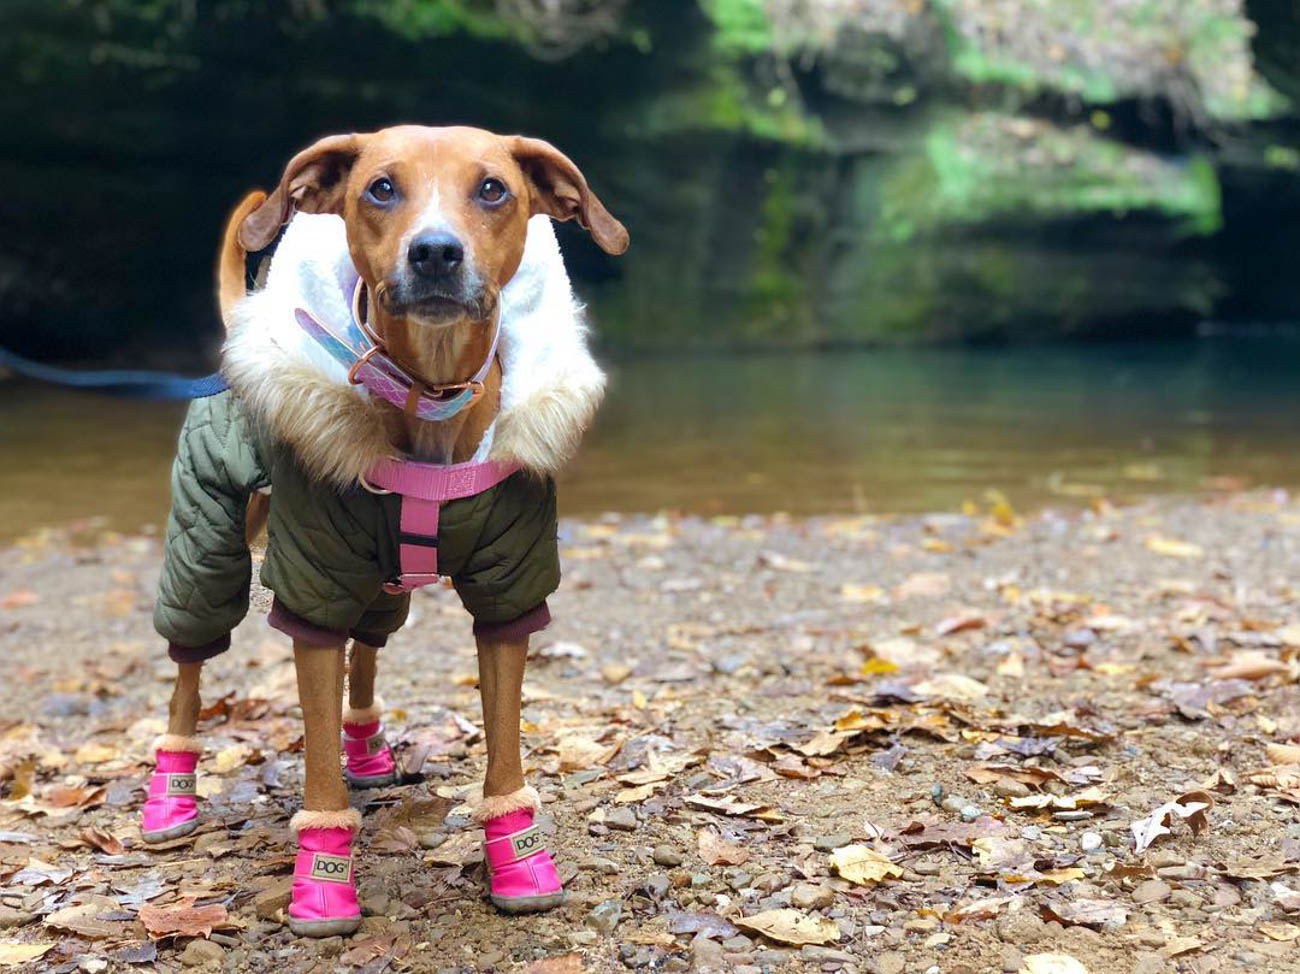 Bella is a Coonhound Mutt who loves to twerk and strut around Downtown in all of her outfits. Bella's mom, Maria K. Della Ripa, loves doggos so much, she's a professional dog sitter. / Image courtesy of Instagram user @bella_inthecity  // Published: 11.28.18